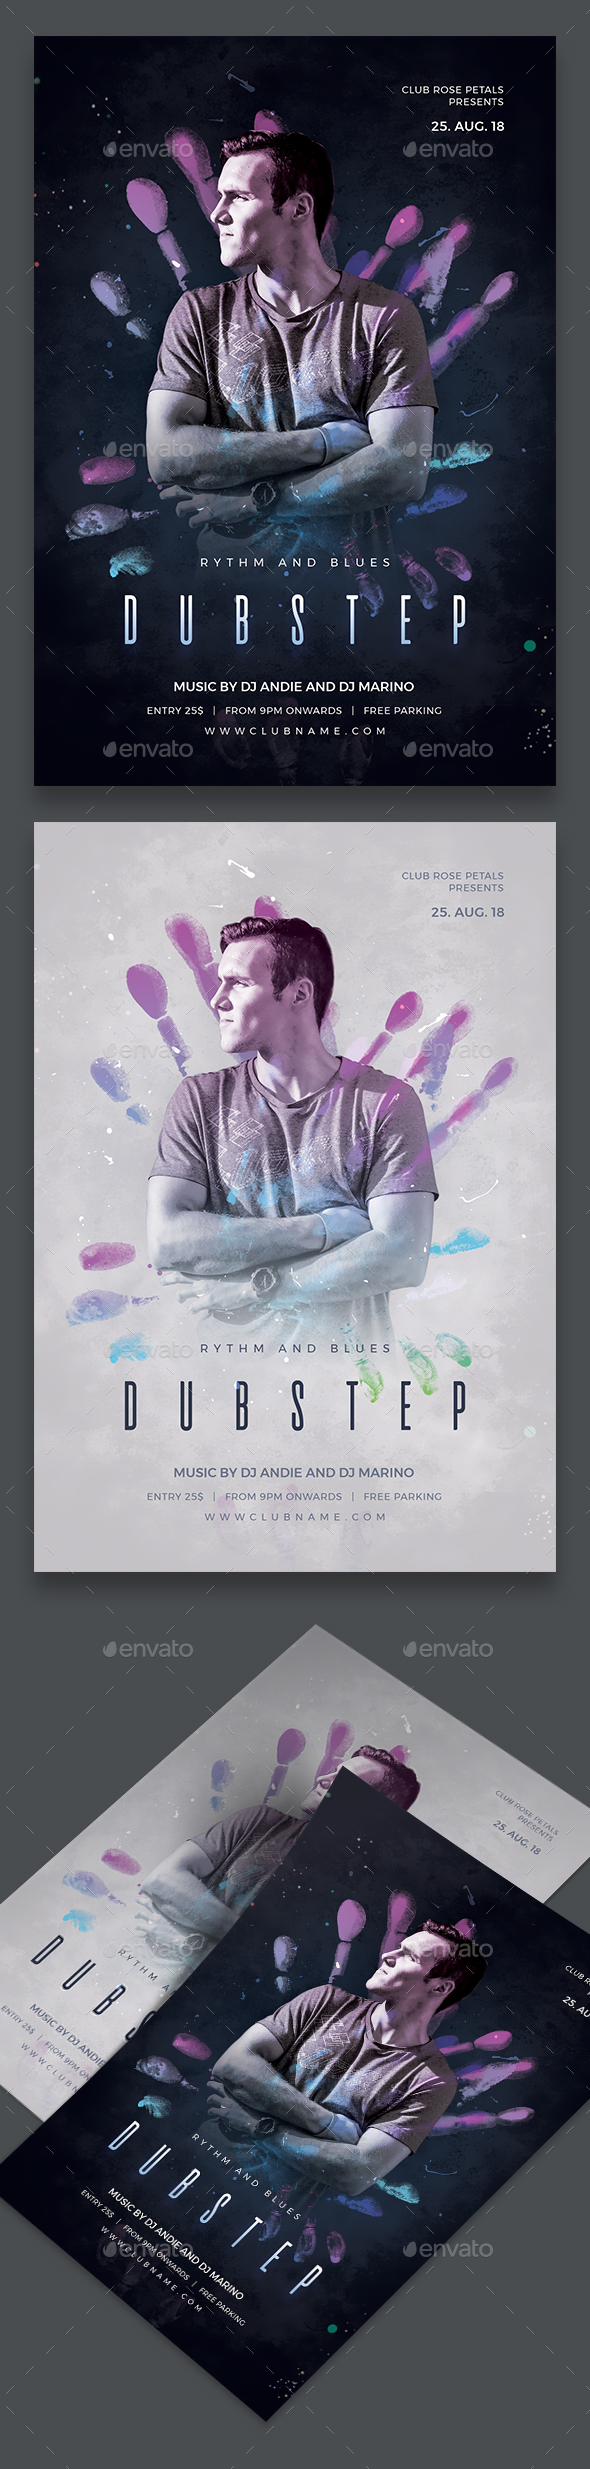 Dubstep Party Flyer - Clubs & Parties Events